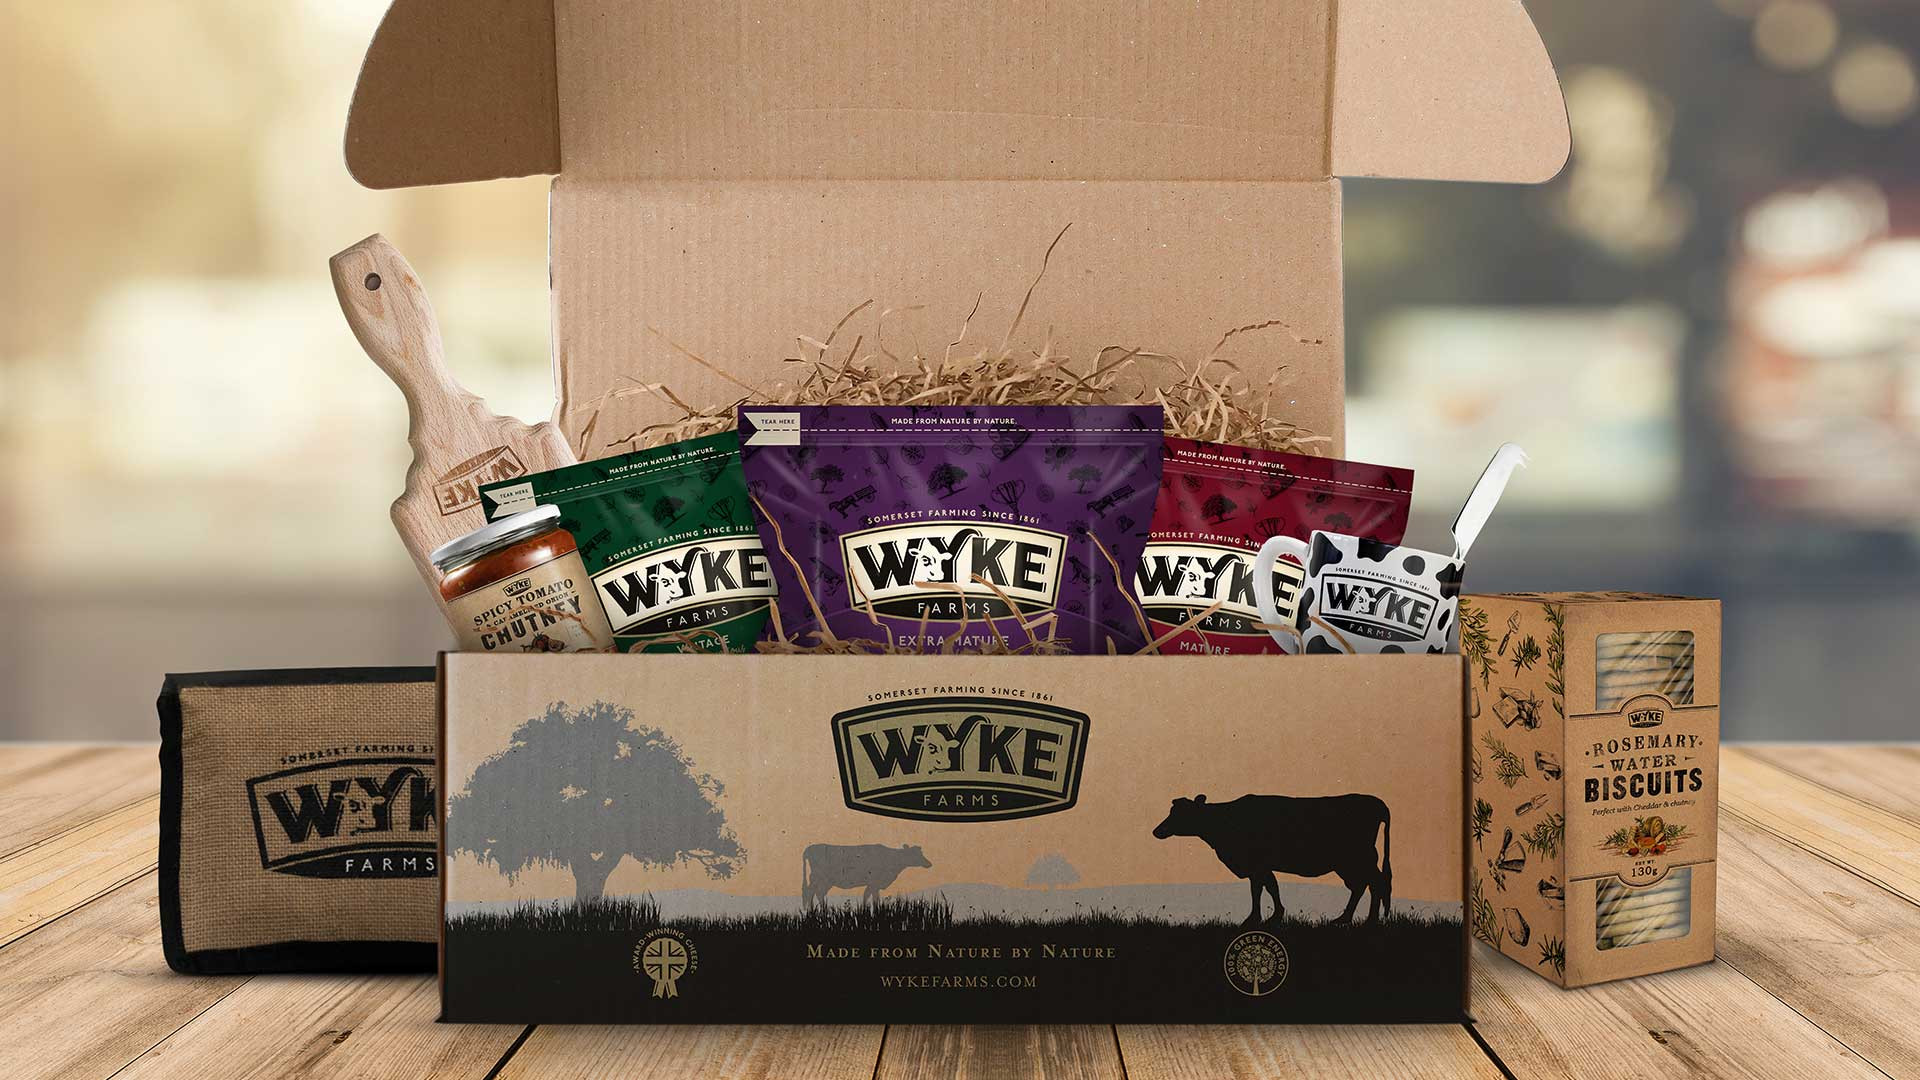 Wyke Farms Cheeselover's hamper